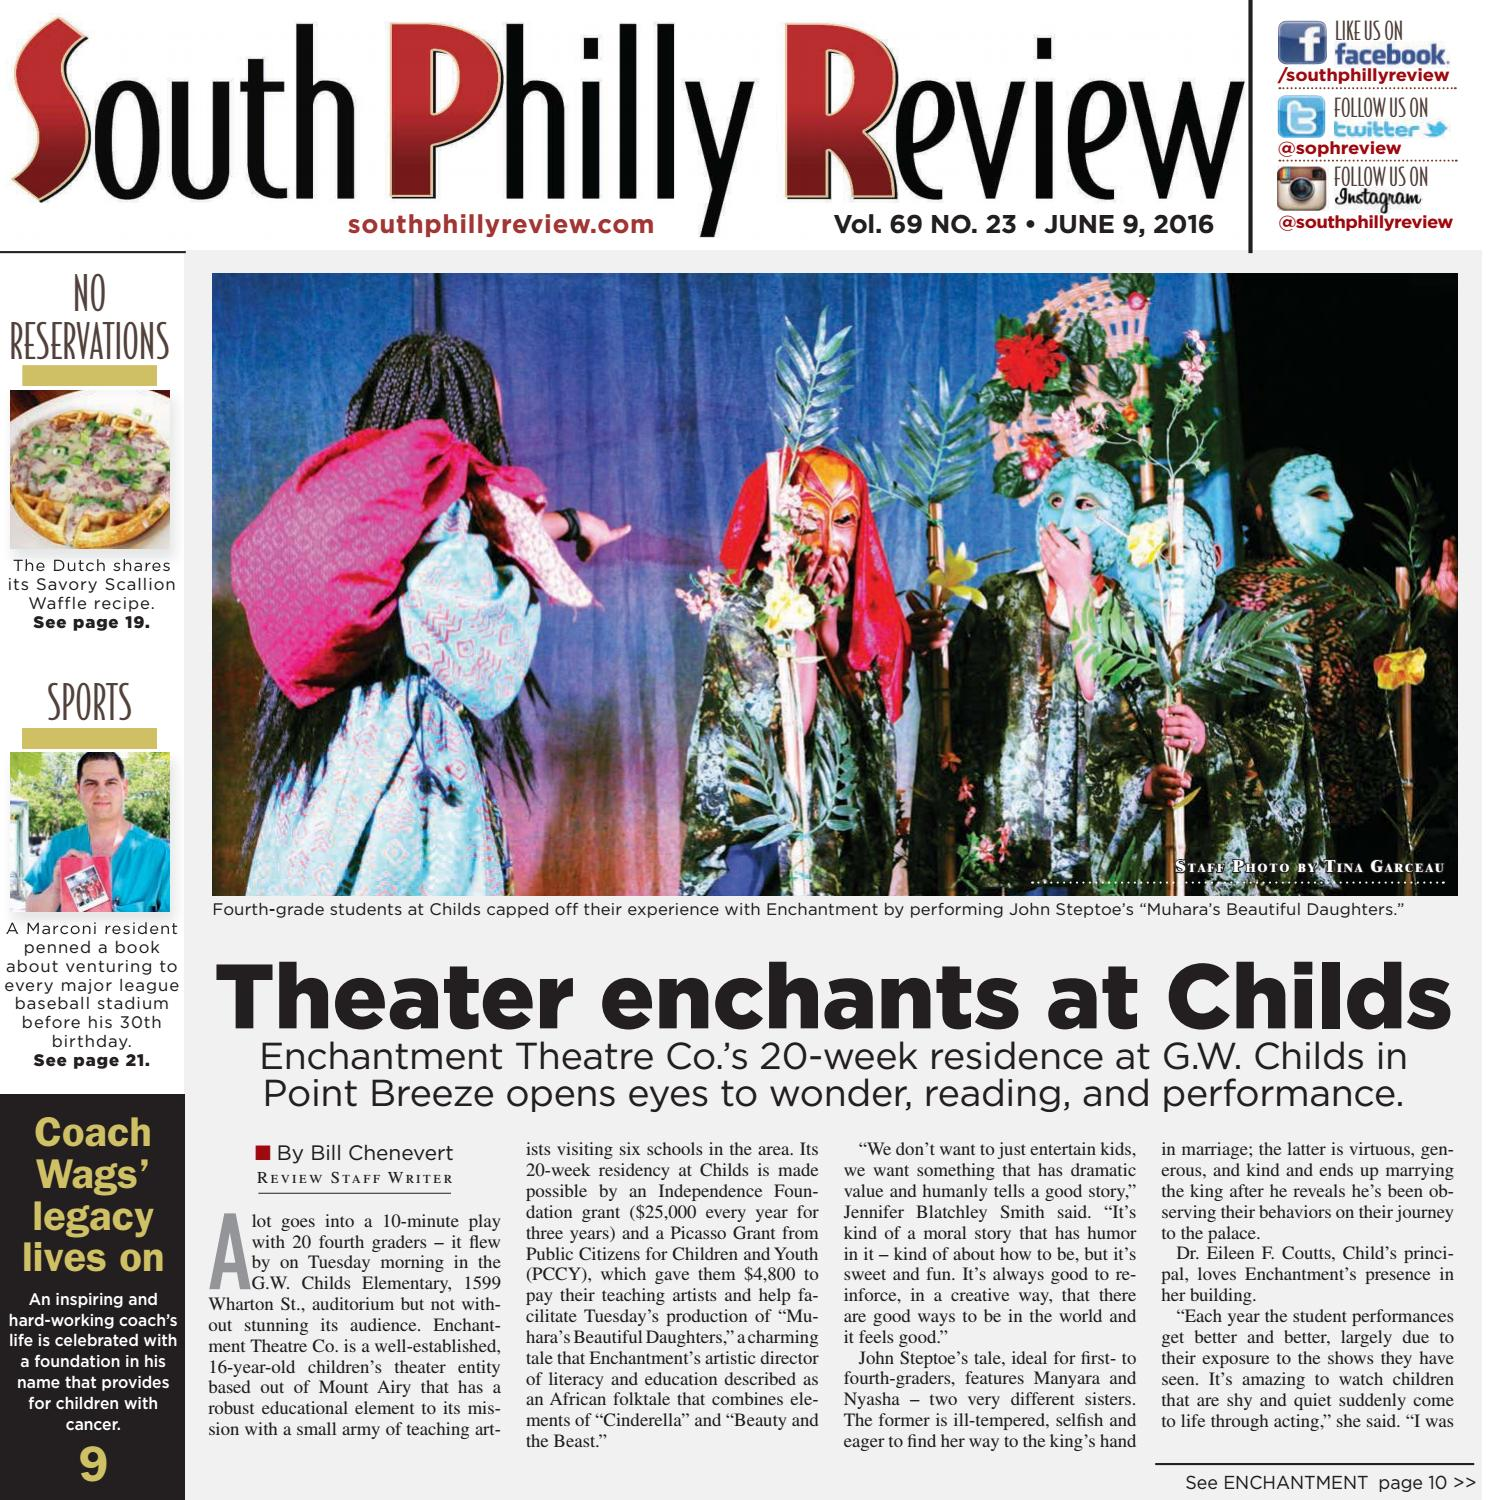 South Philly Review 6 9 2016 by South Philly Review issuu